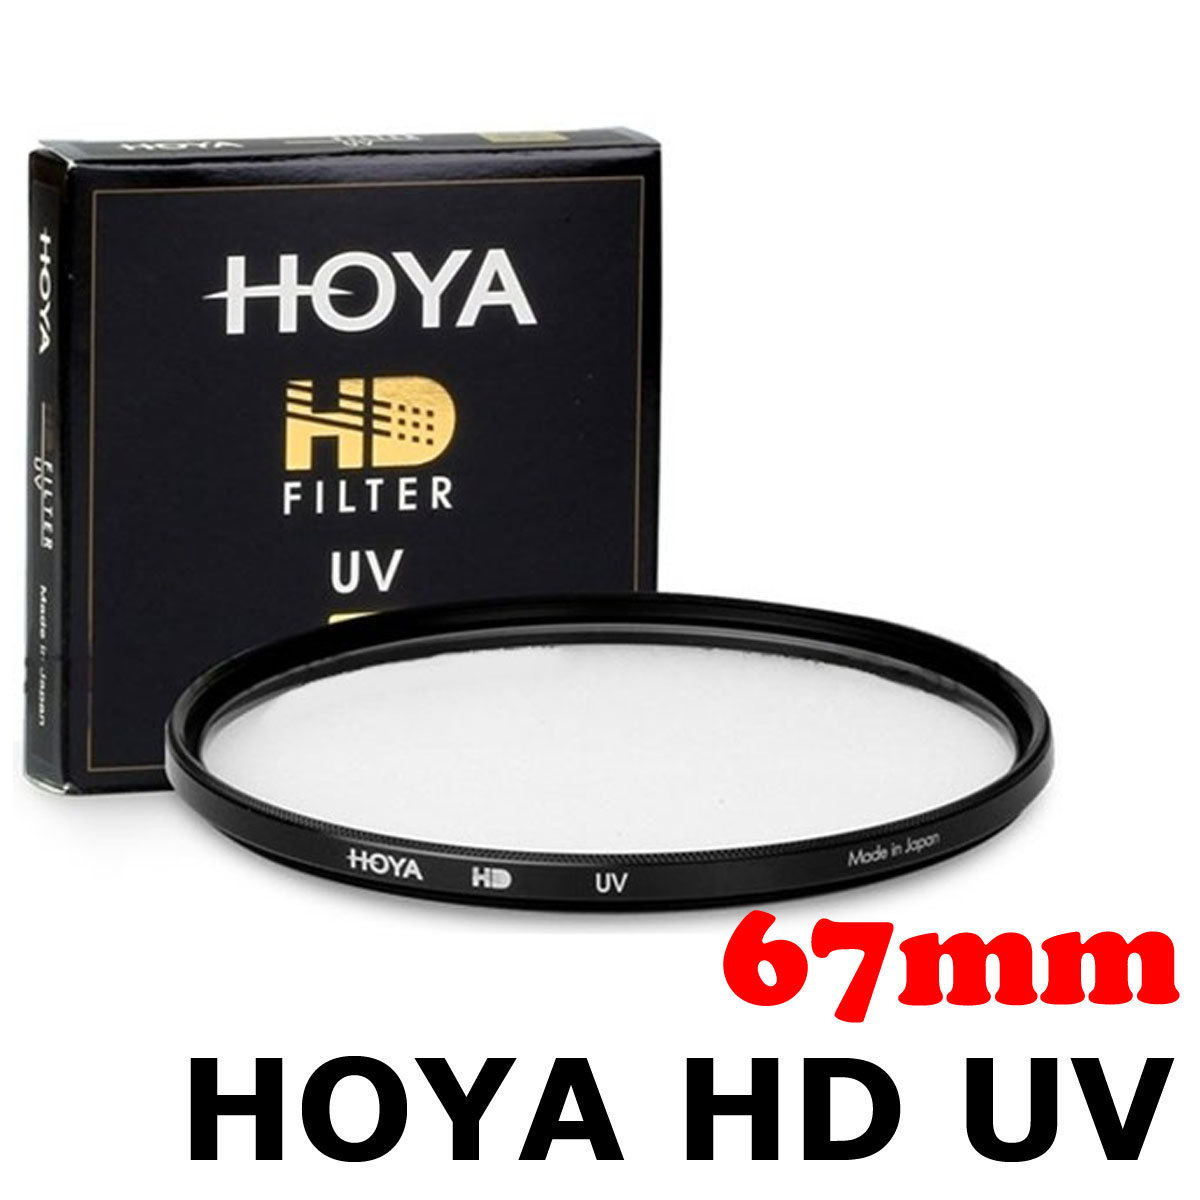 HD UV 67mm Filter 超薄多層鍍膜防水UV保護濾鏡